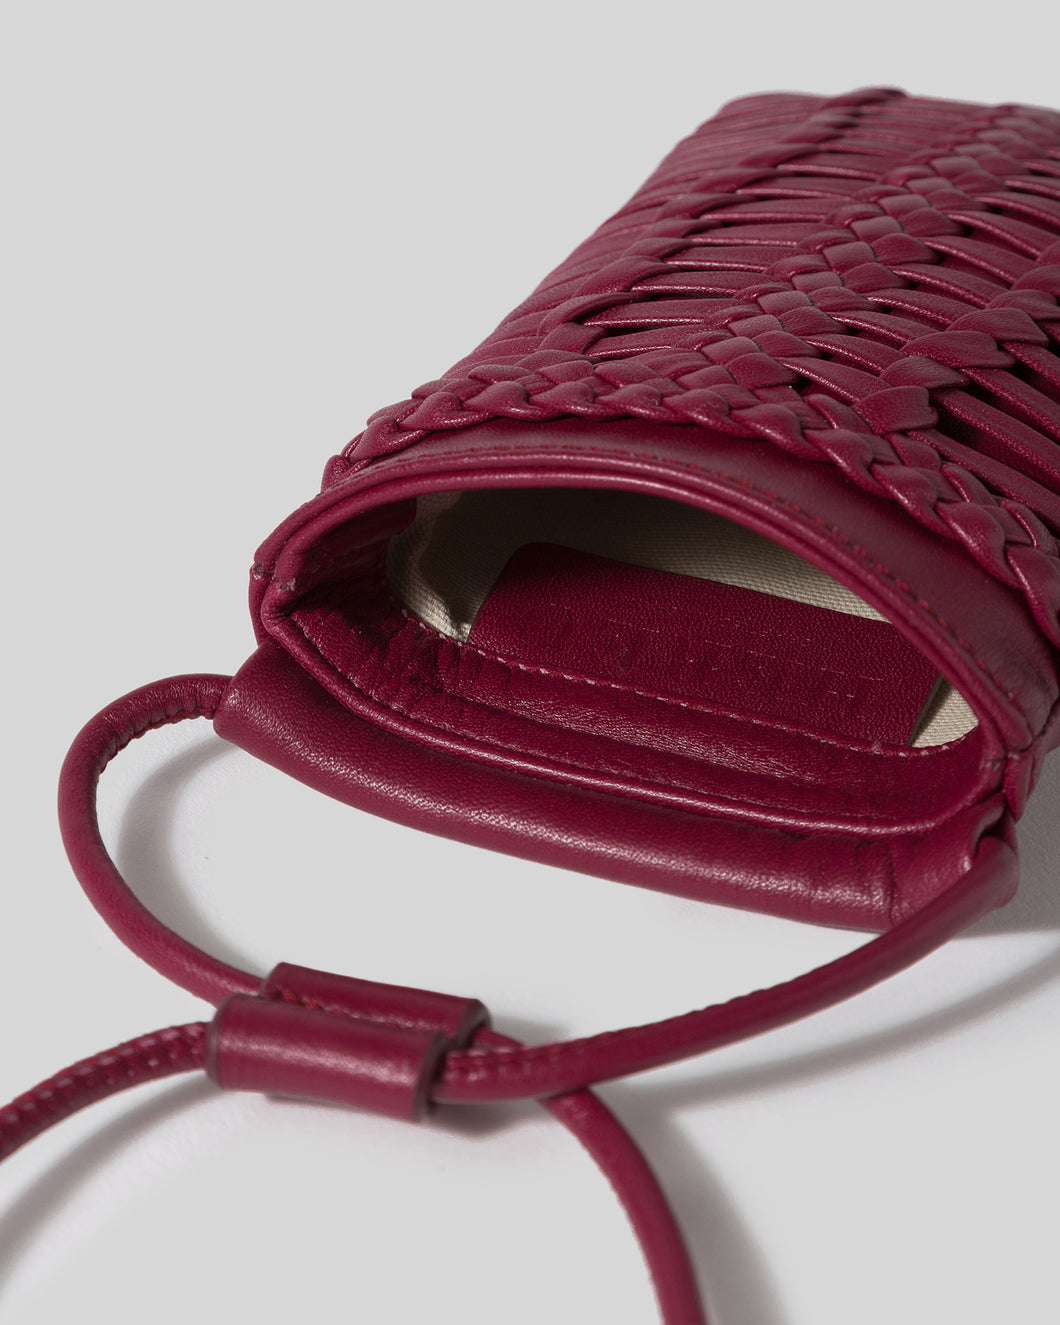 TRENA PHONE - Woven Phone Pouch